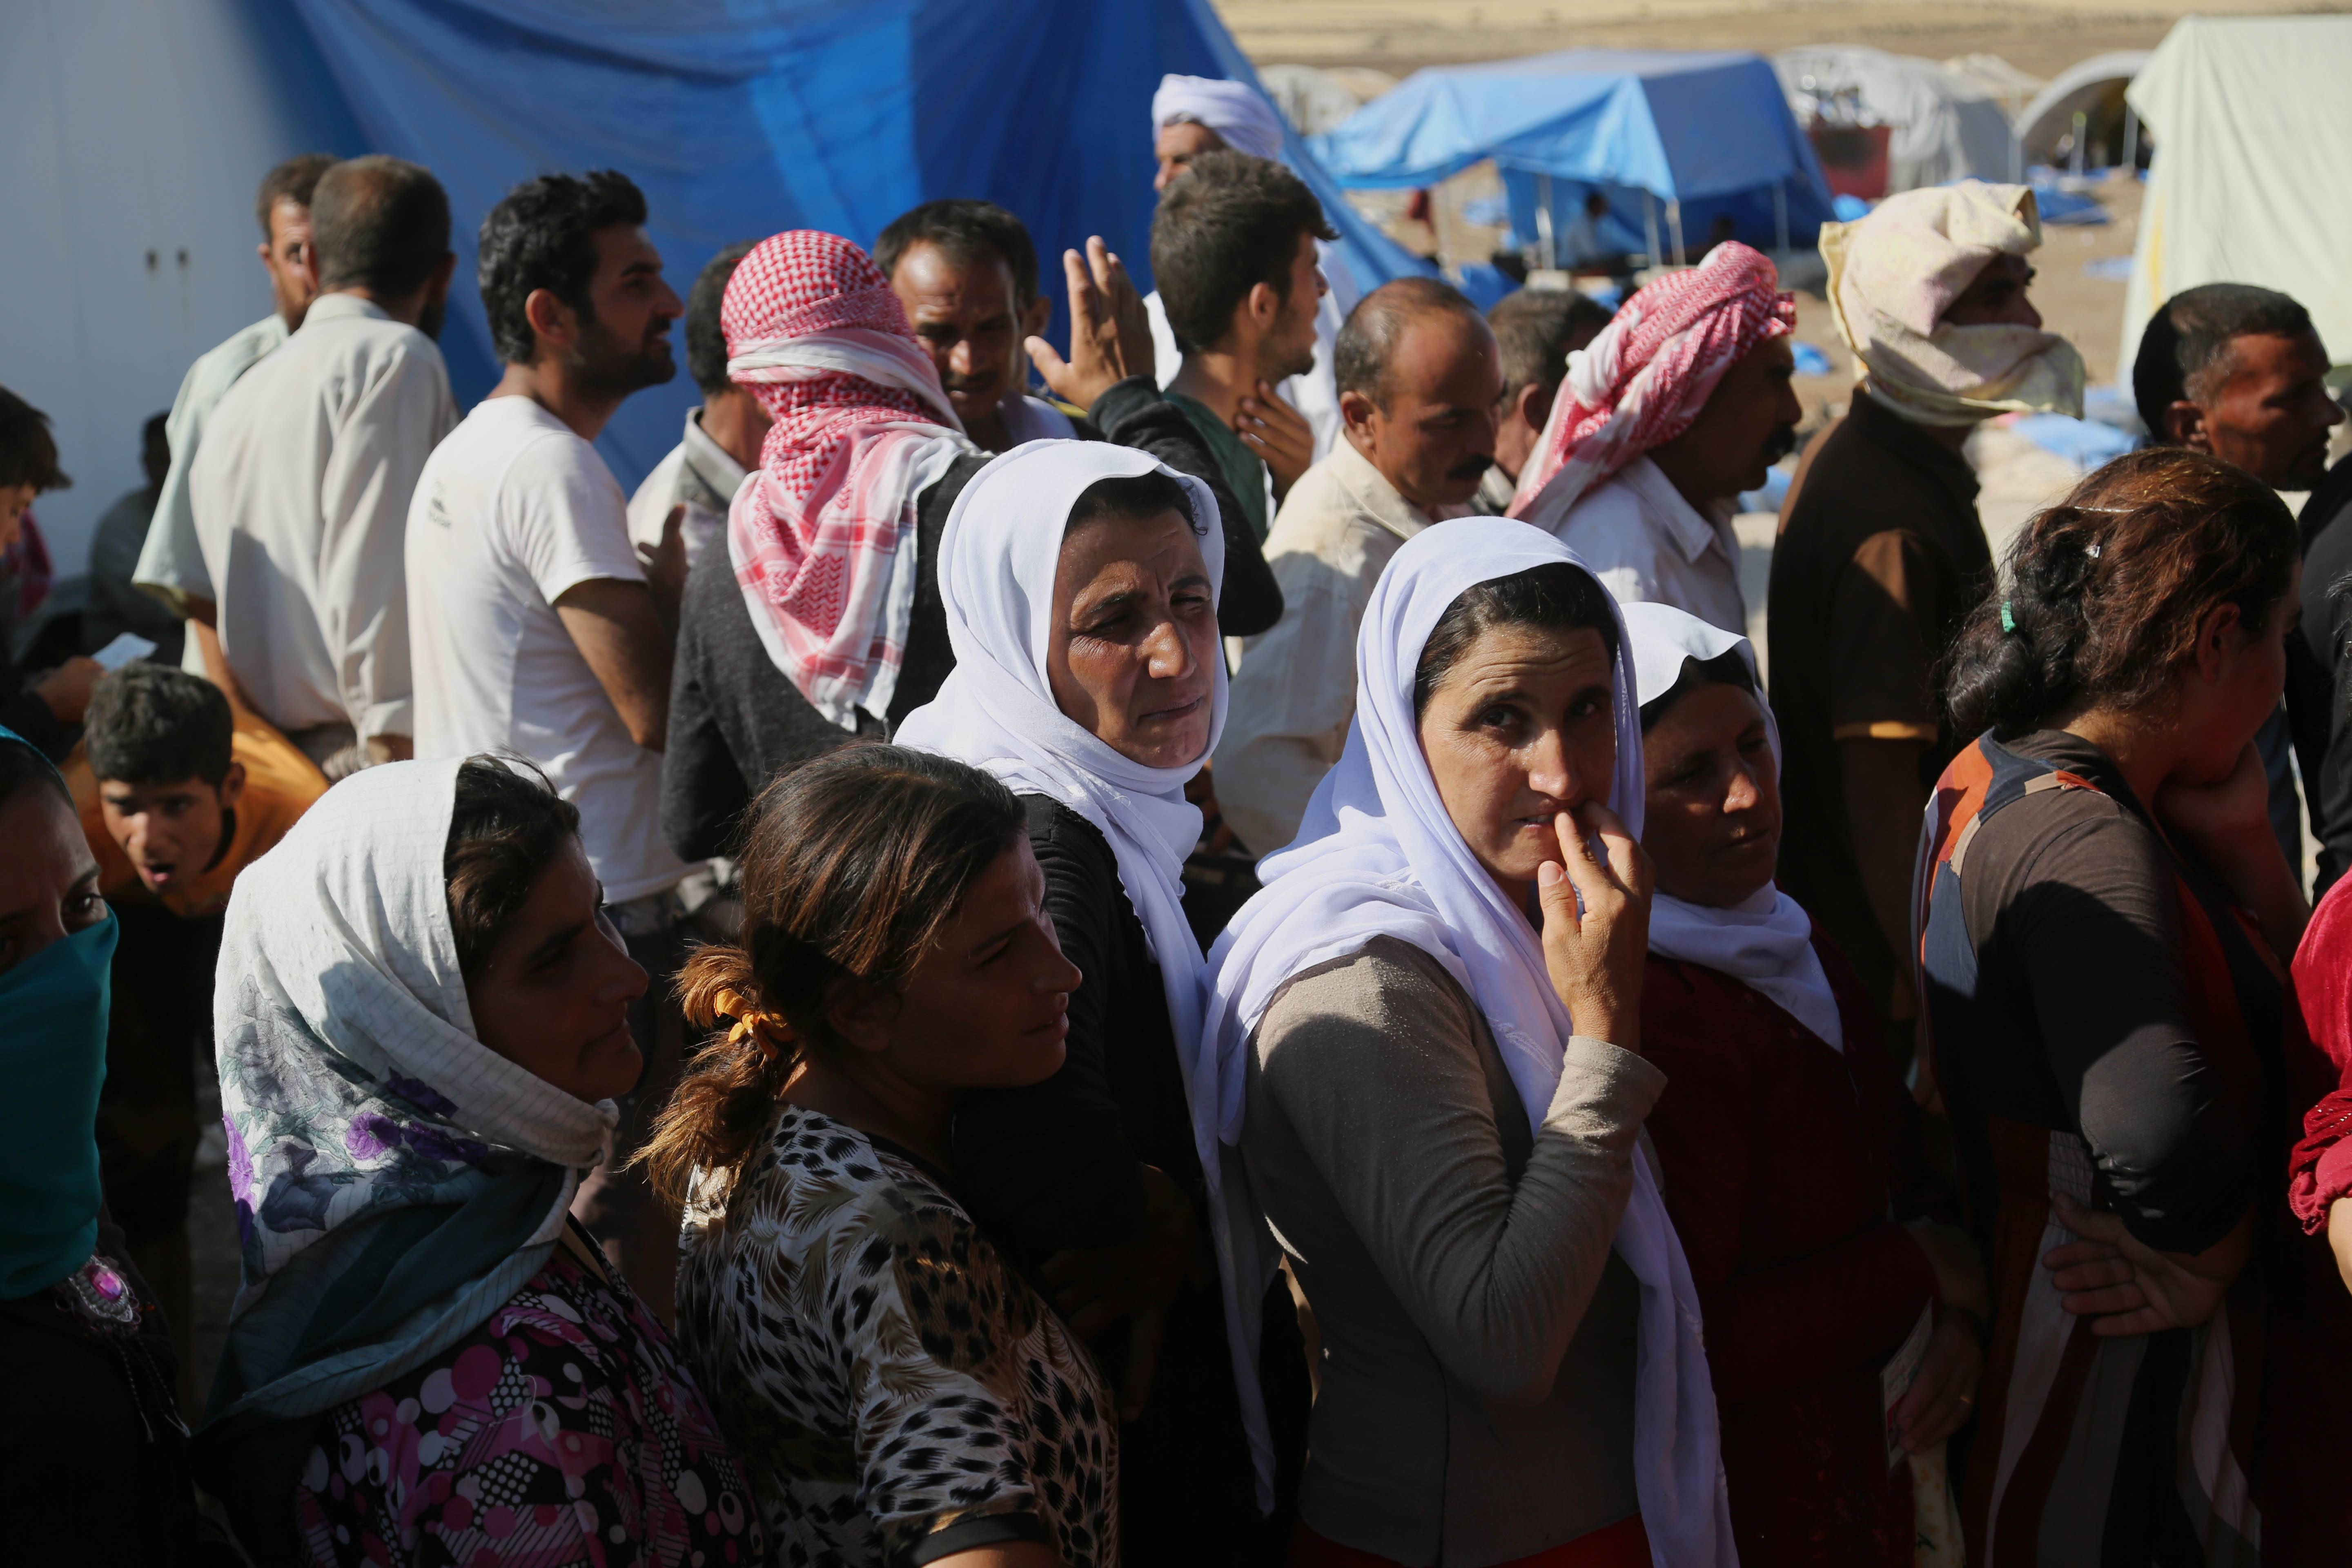 Displaced Iraqis from the Yazidi community gather for humanitarian aid at Nowruz camp, in Derike, Syria, Tuesday.